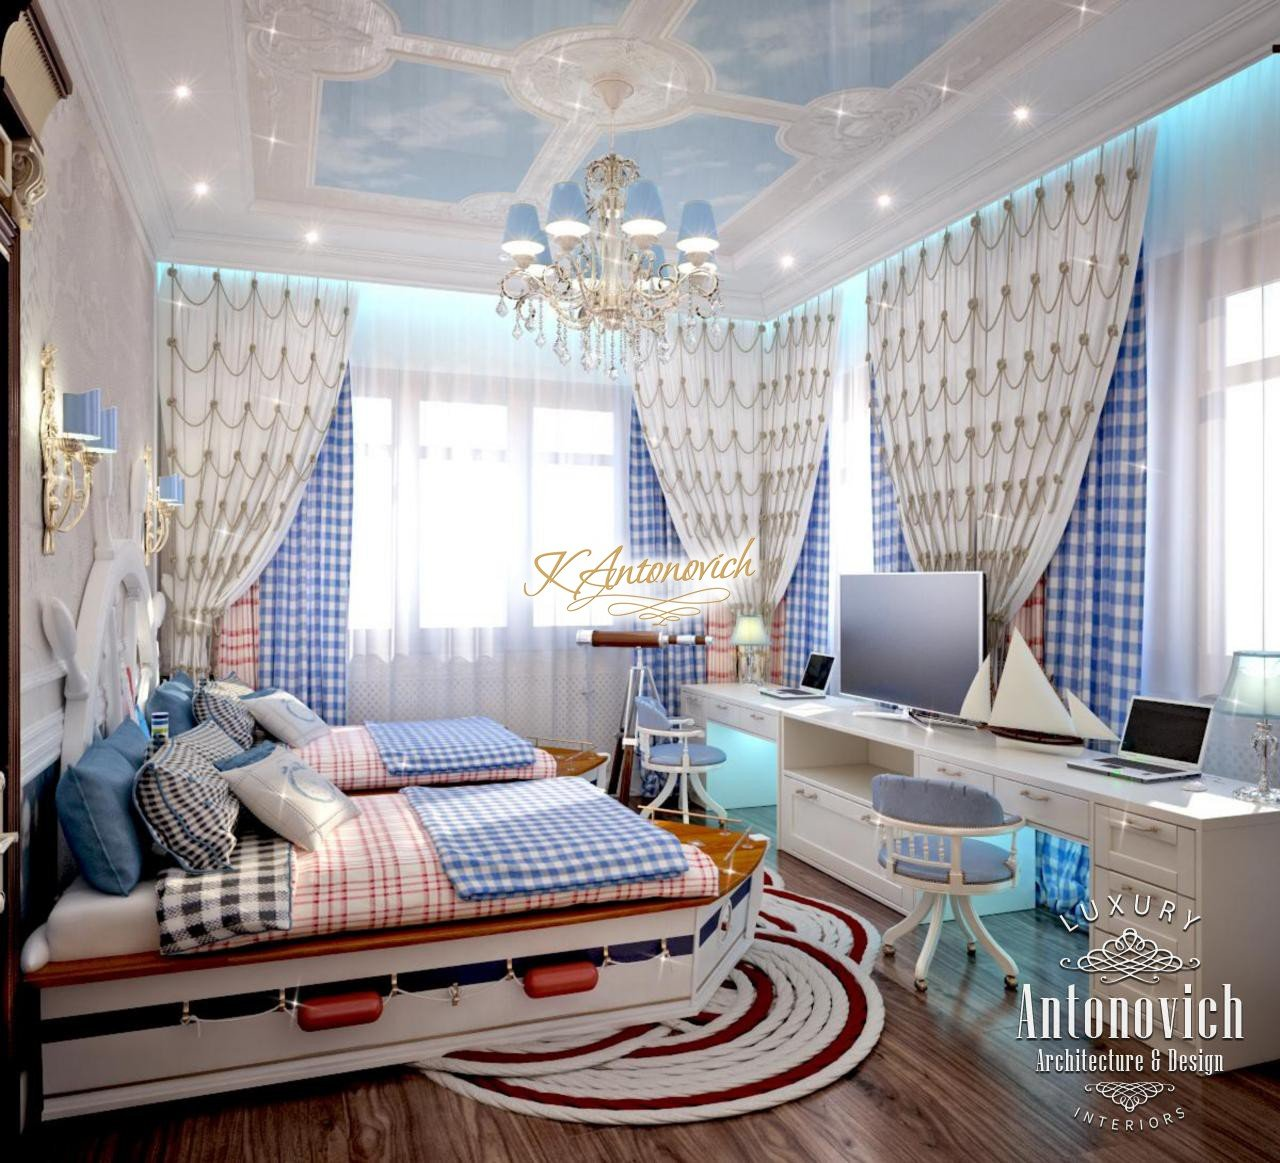 S Design Interieur Children 39s Room Interior Design